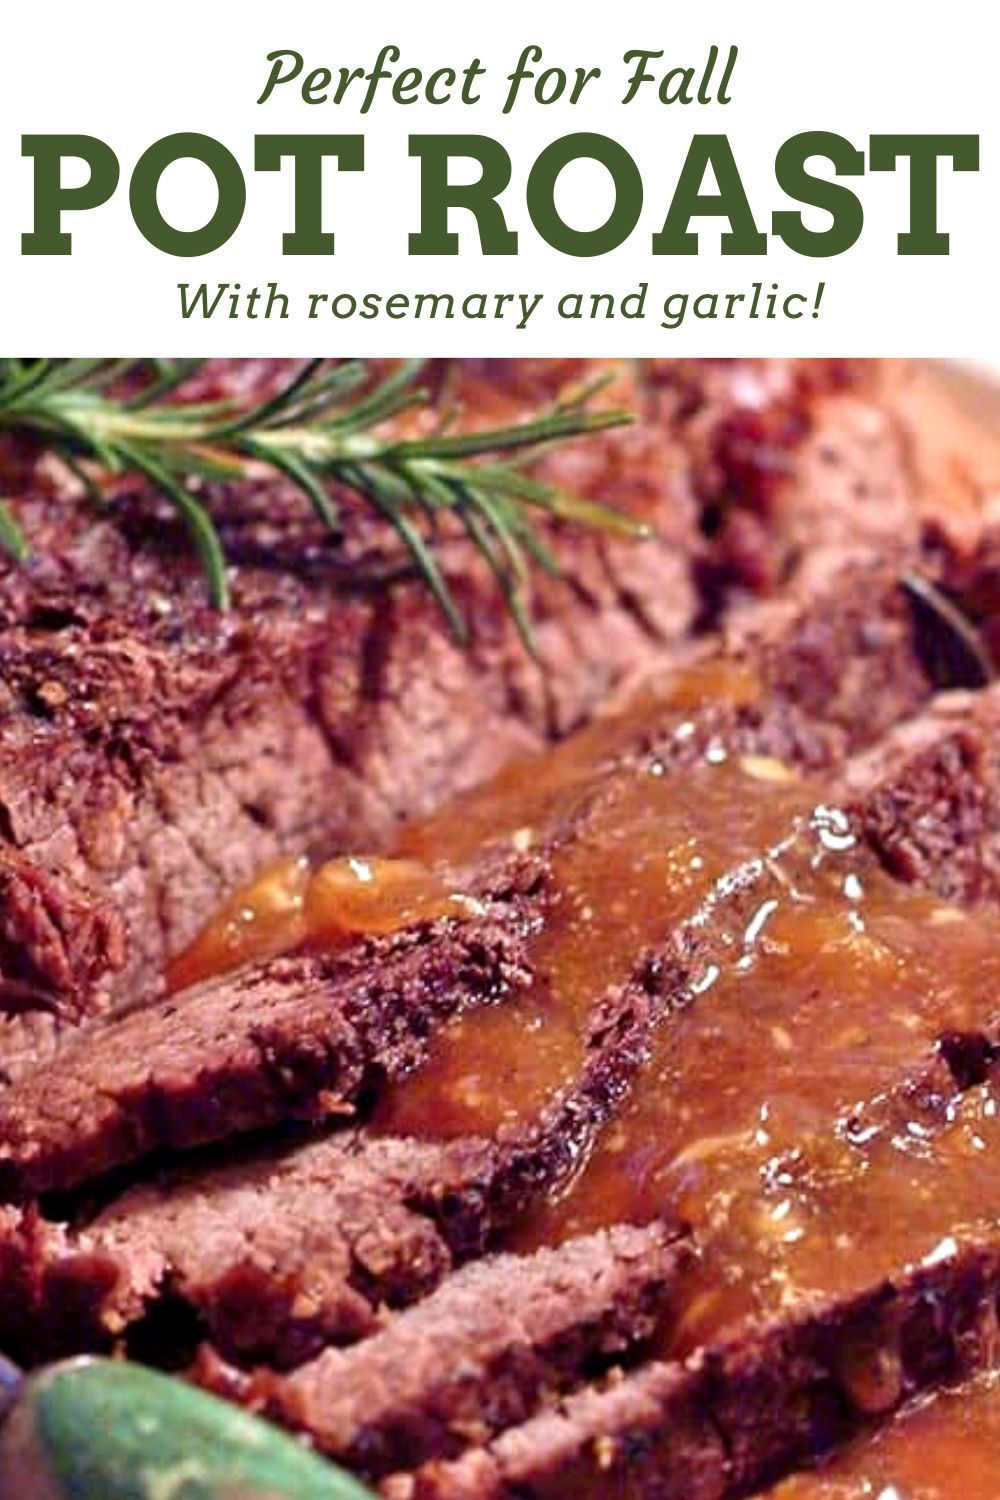 Pot Roast With Rosemary And Garlic Recipe In 2020 Pot Roast Delicious Beef Recipe Pot Roast Seasoning